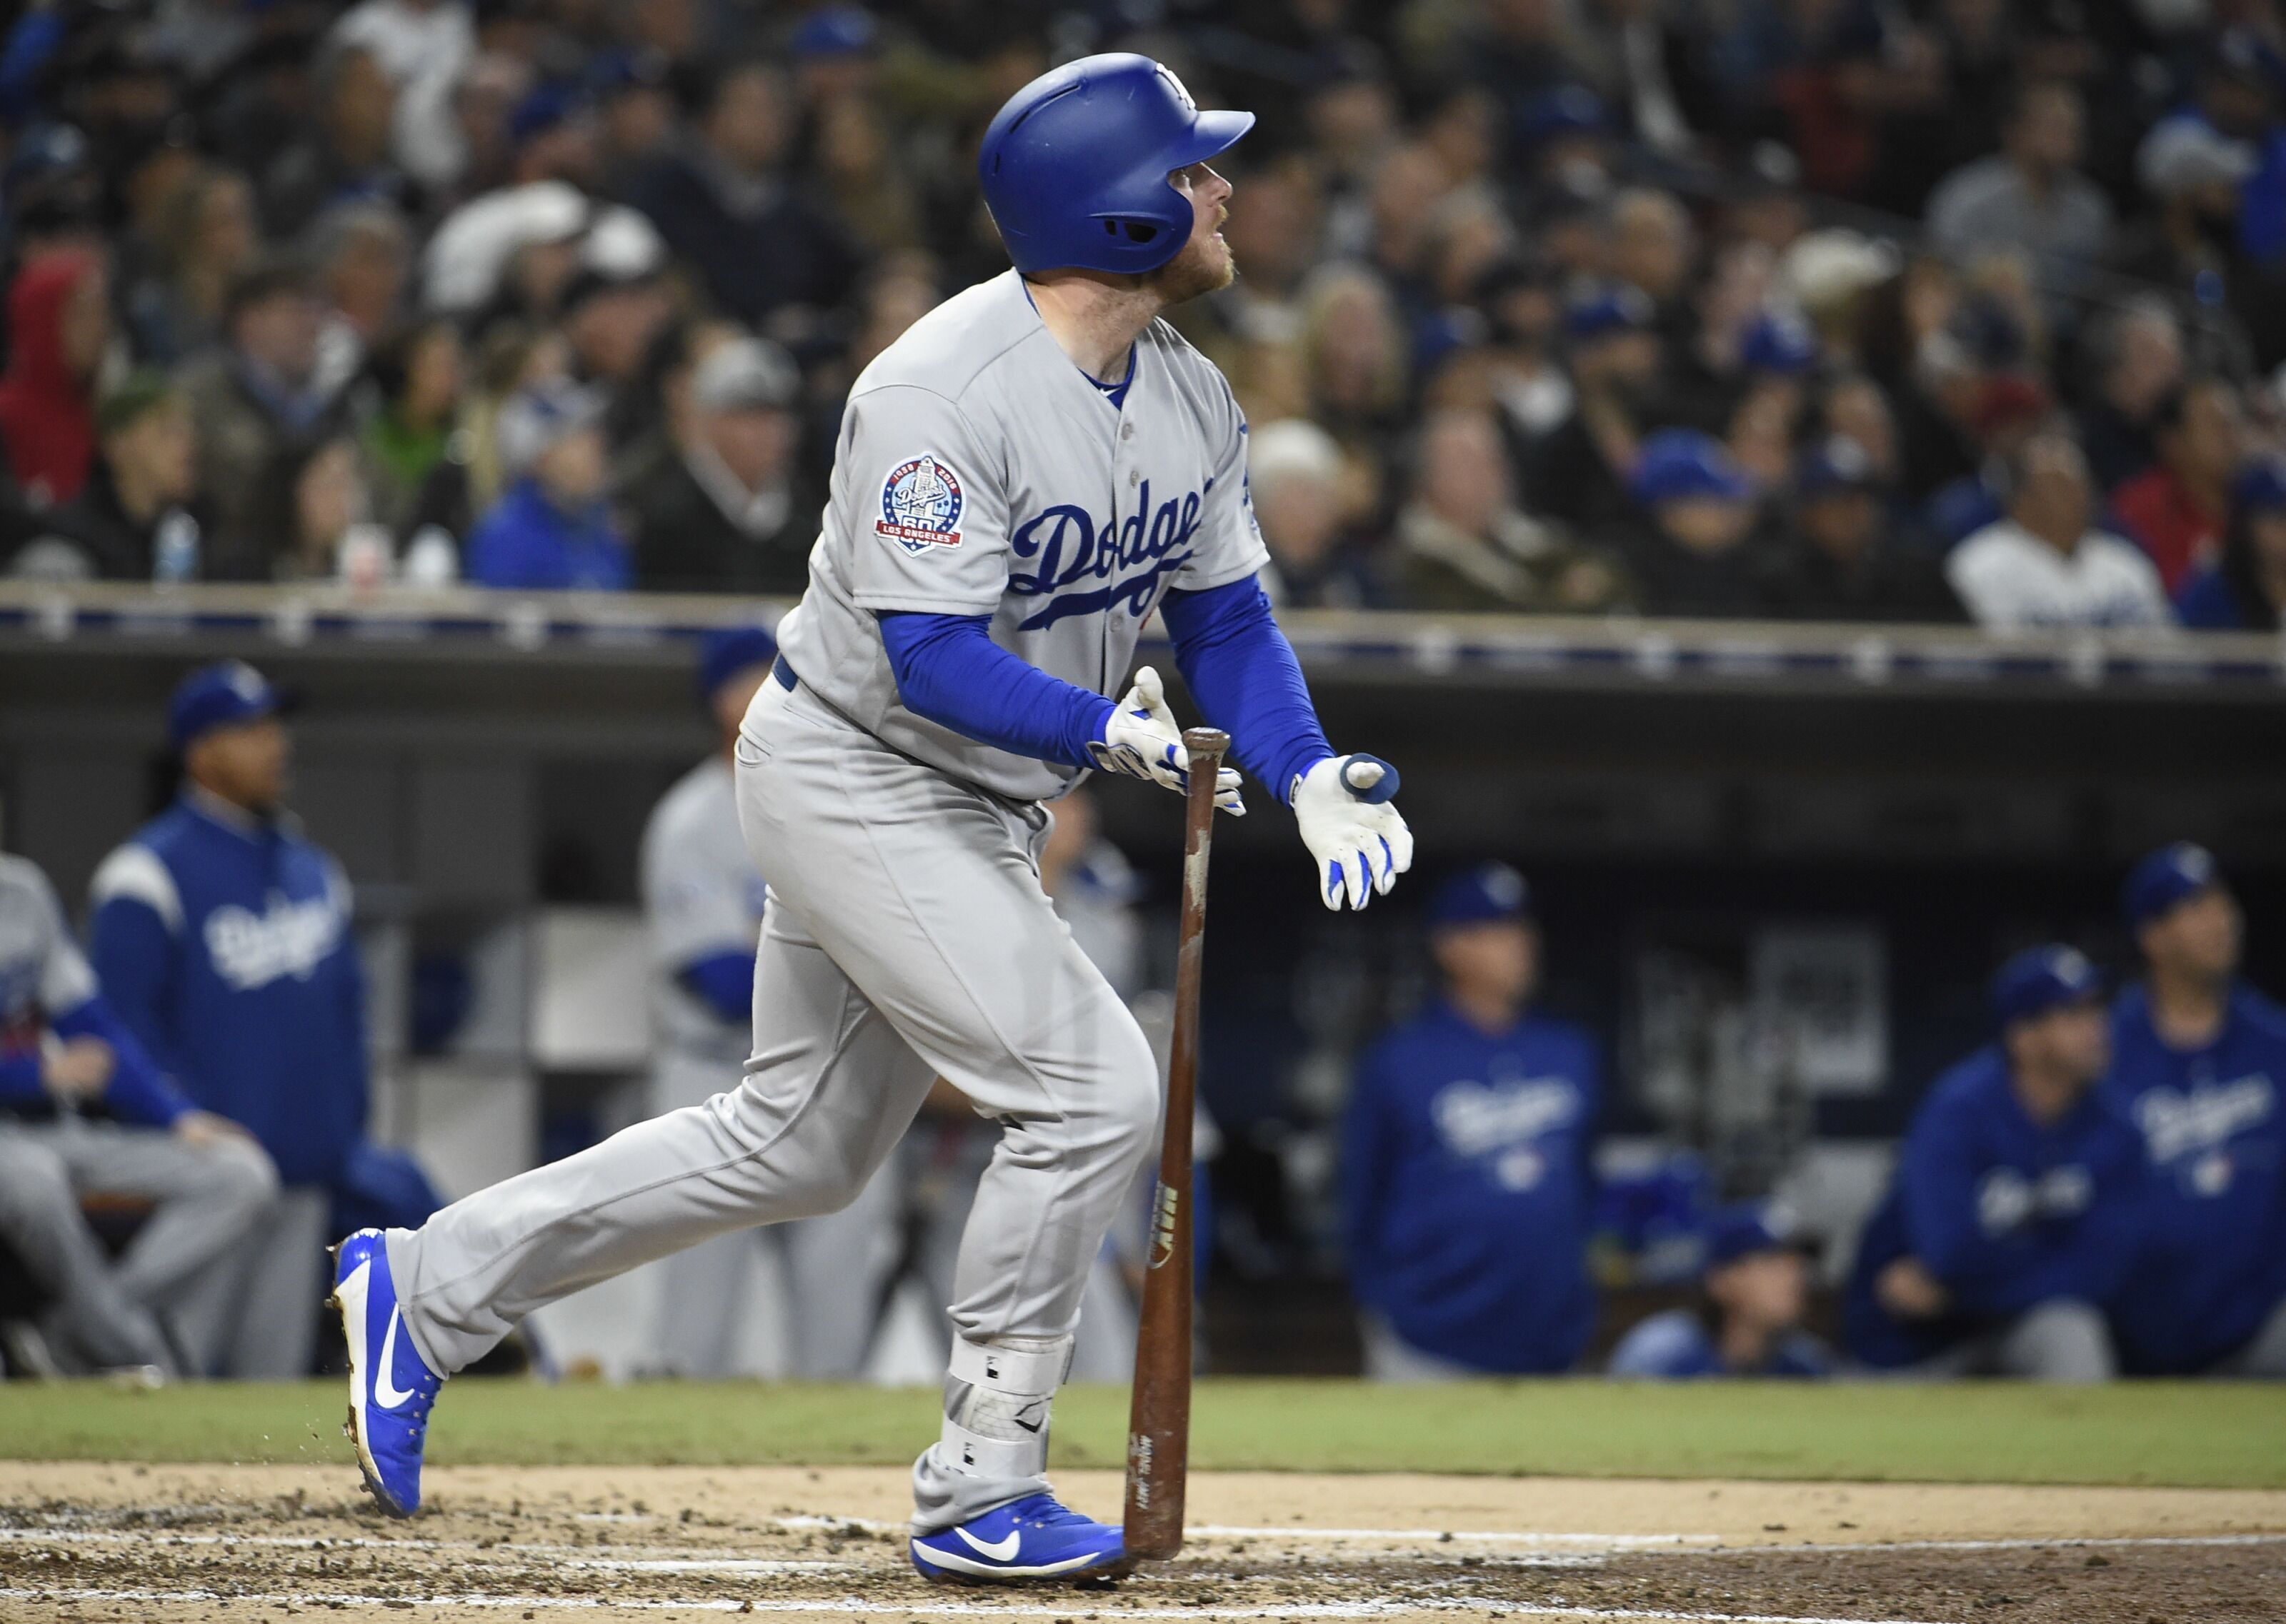 Dodgers  Get to Know Recent Call-Up Max Muncy 4697a5a0e82